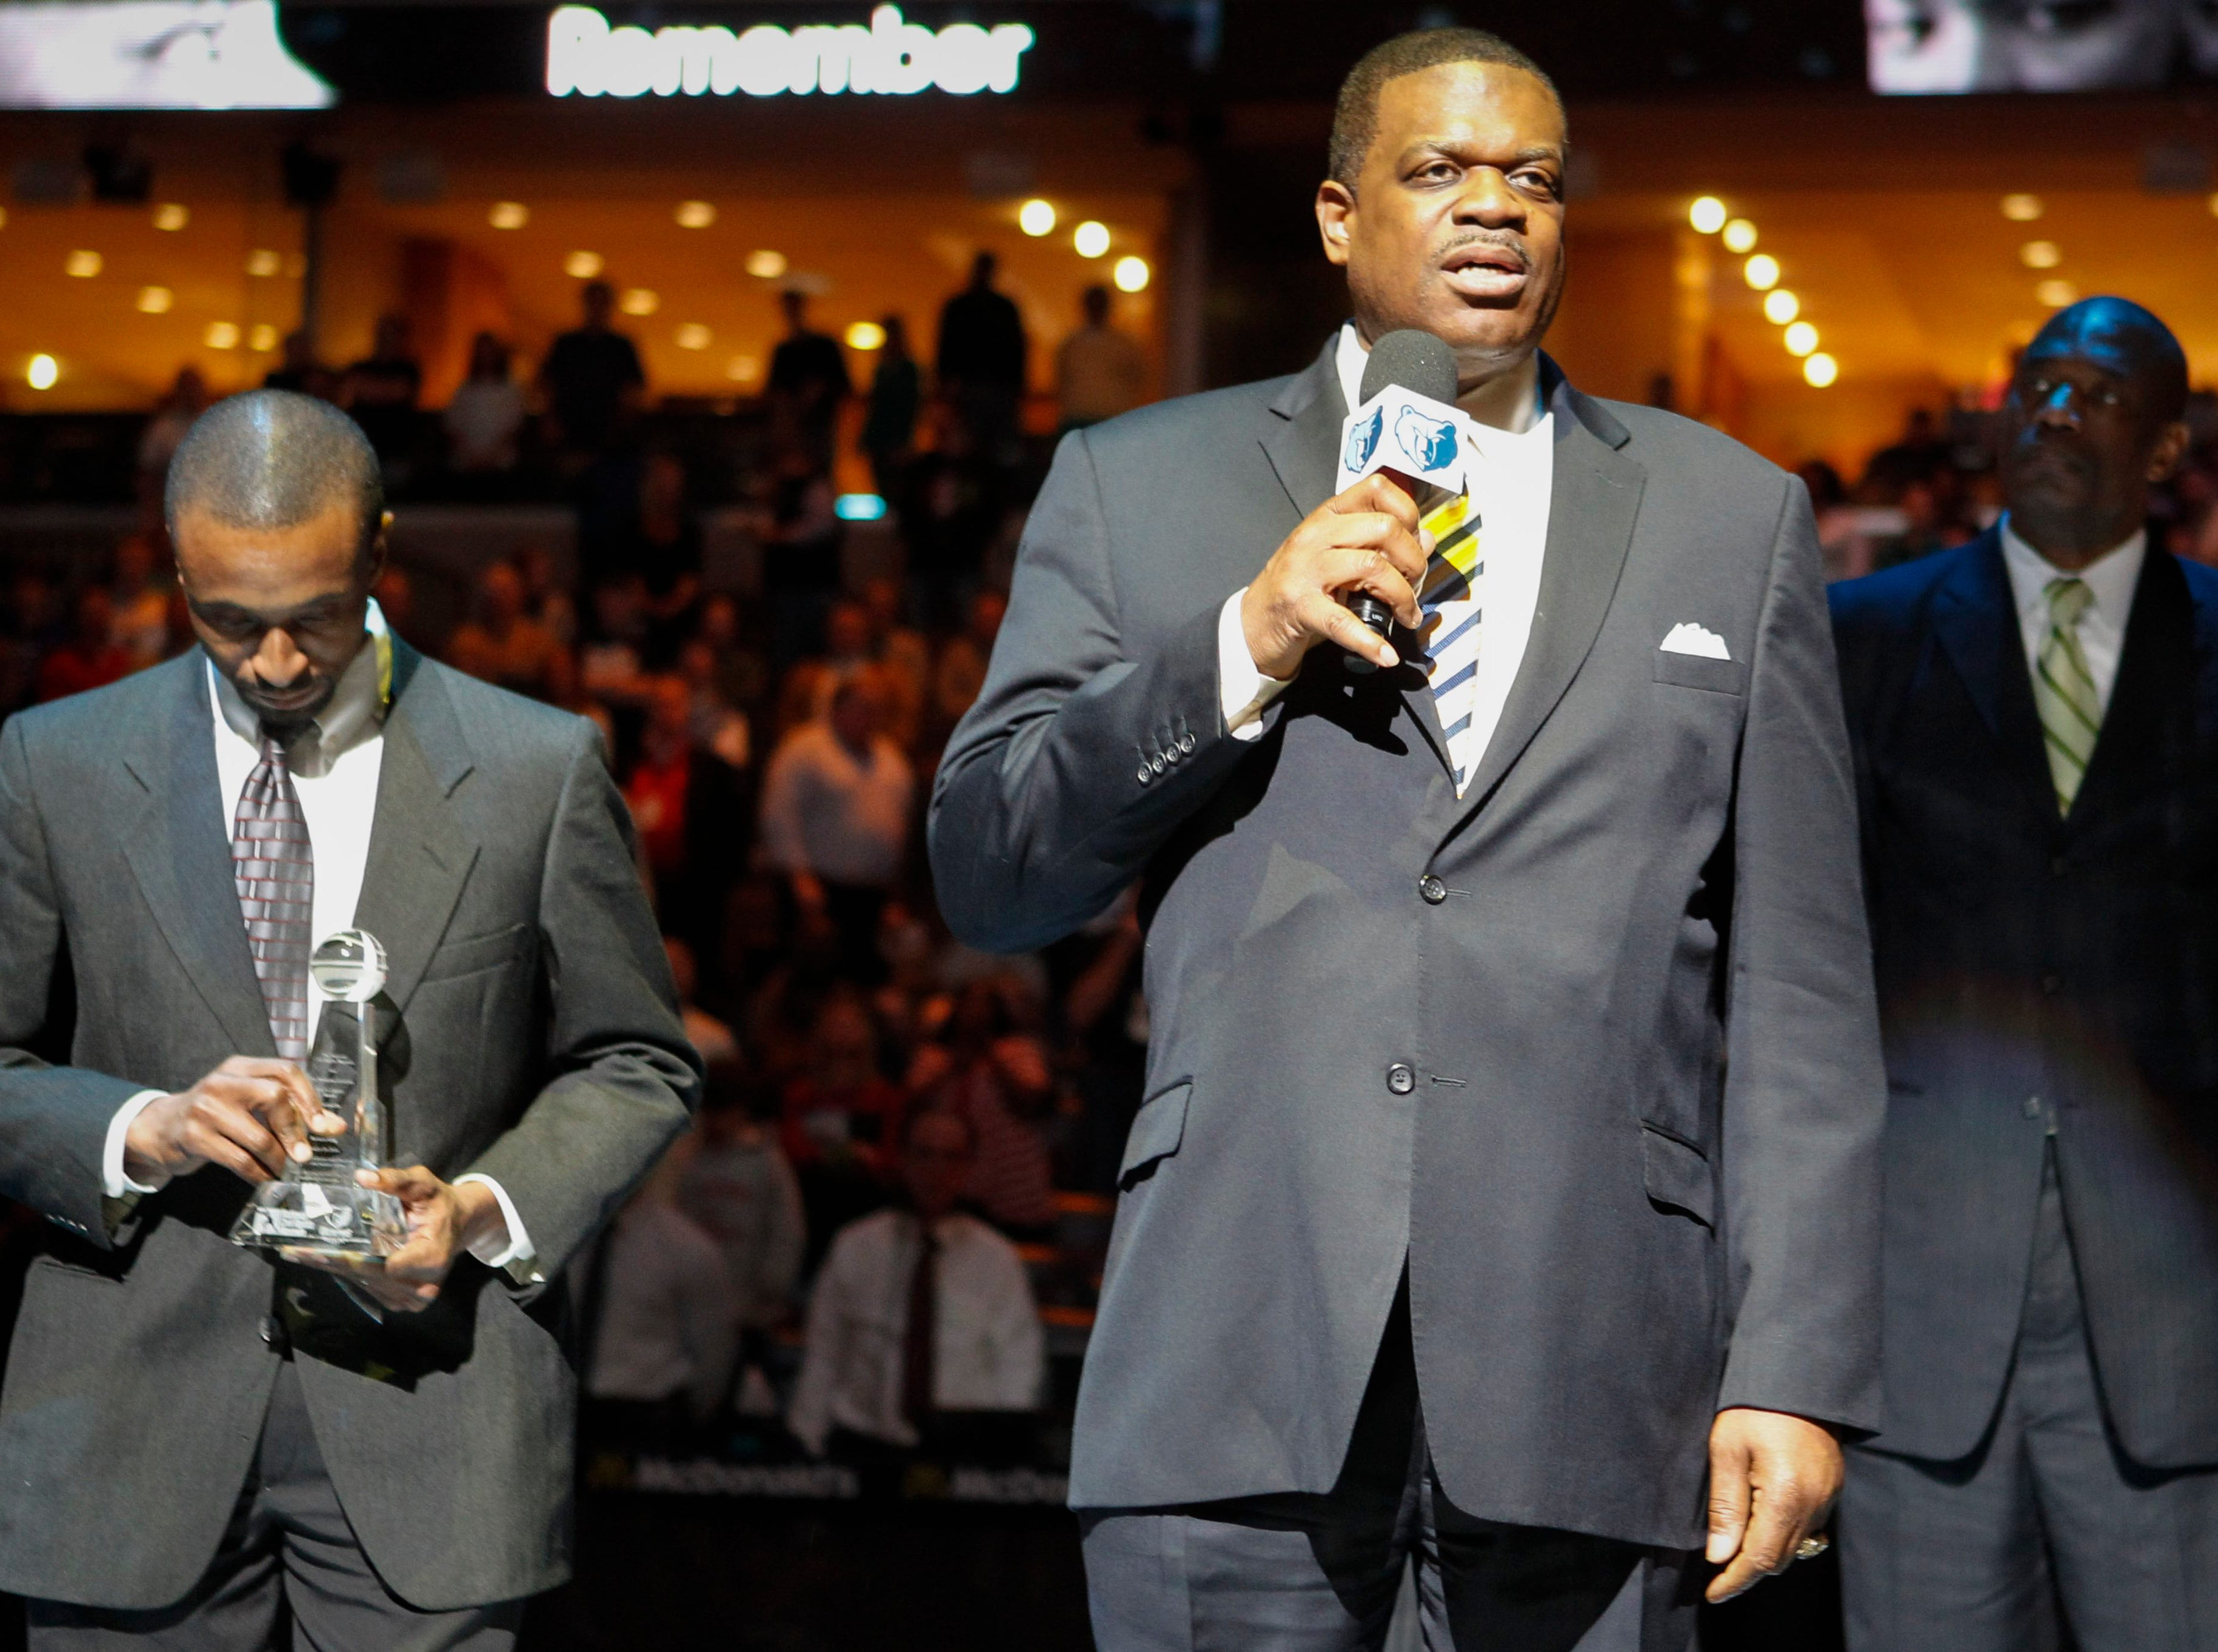 Bernard King accepts the National Civil Rights Sports Legacy Awards, with Jojo White and Dikembe Mutombo before the start of the New Orleans Pelicans against Memphis Grizzlies NBA basketball game, Monday, Jan. 20, 2014, in Memphis, Tenn. (AP Photo/Lance Murphey)